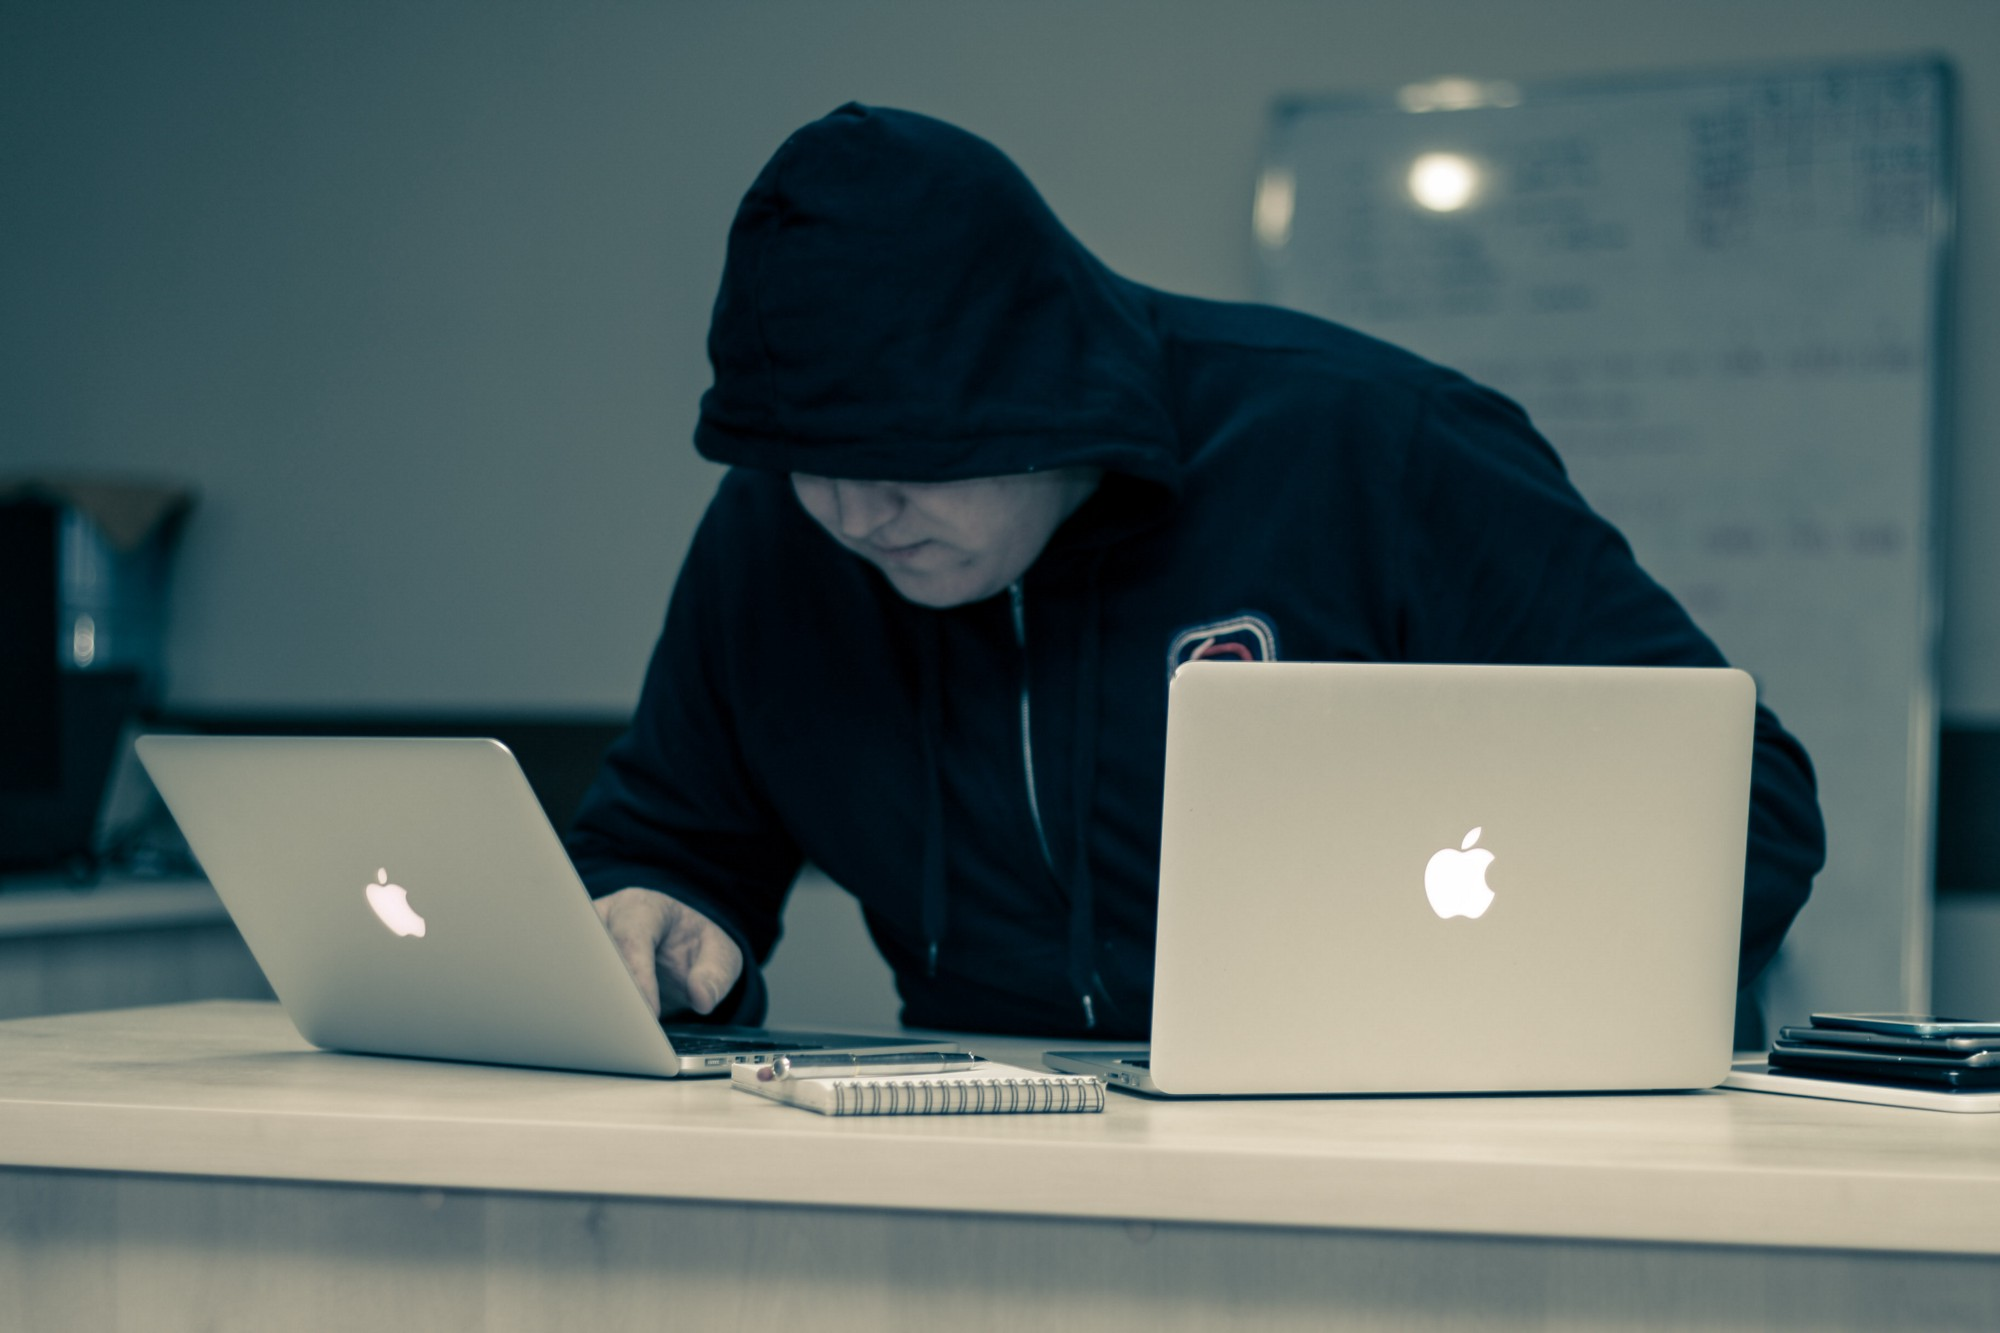 Hooded person uses two laptops, looking dodgy